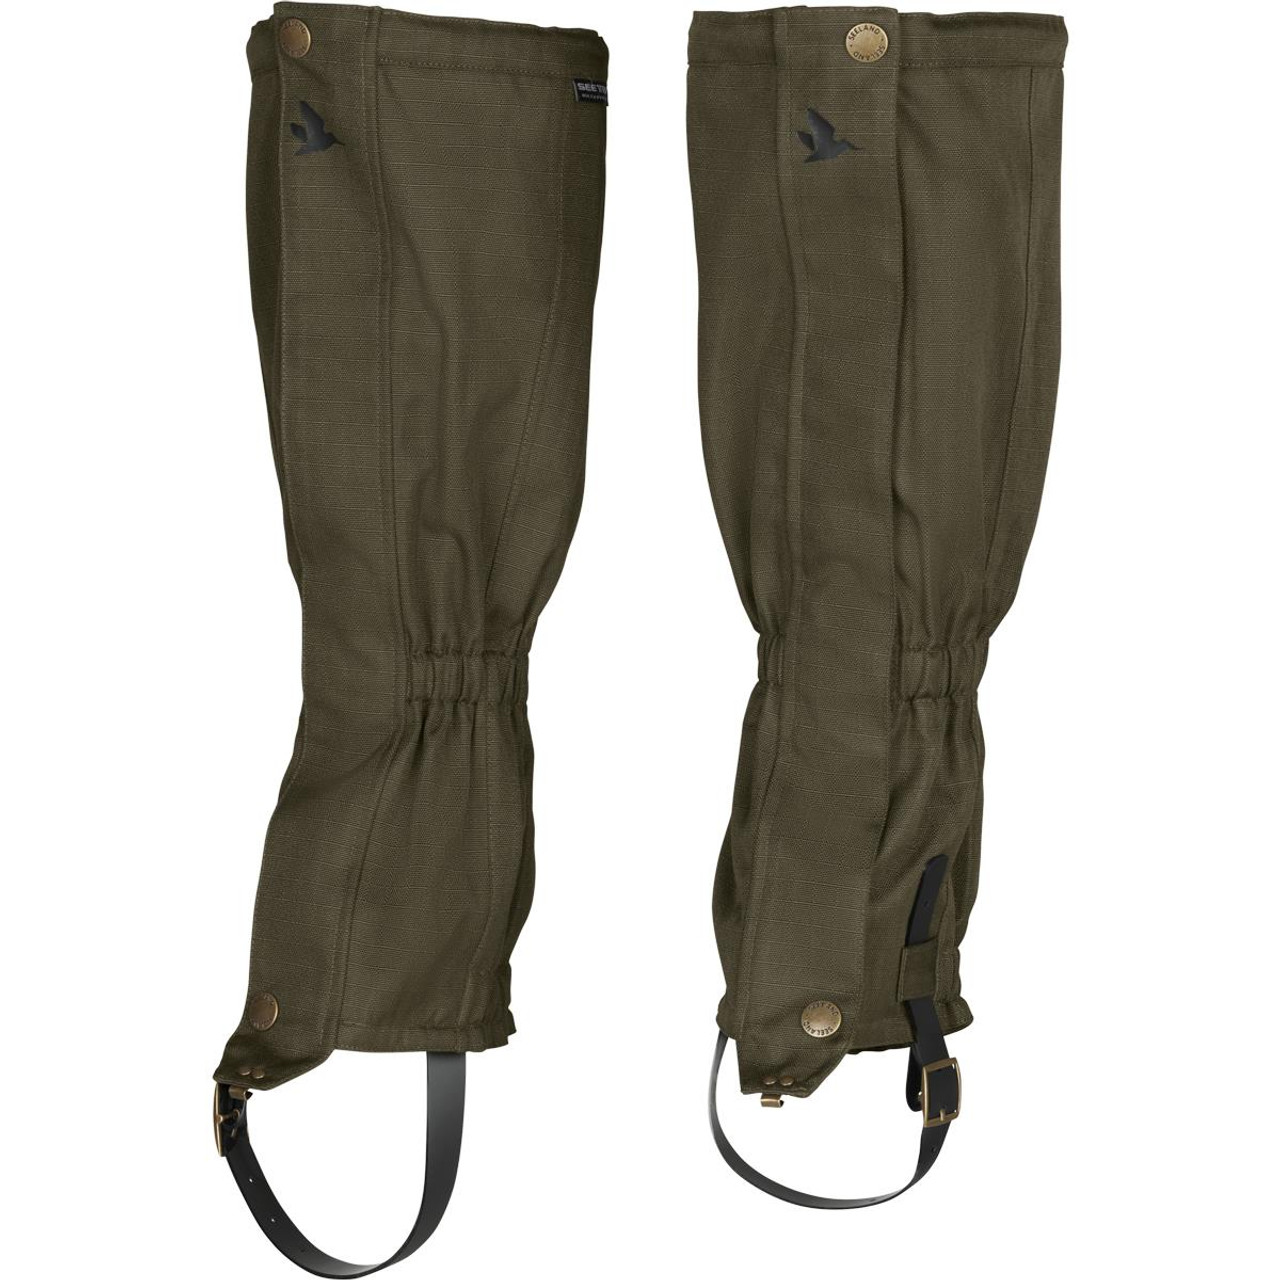 Seeland Buckthorn Gaiters / Shaded Olive / One Size